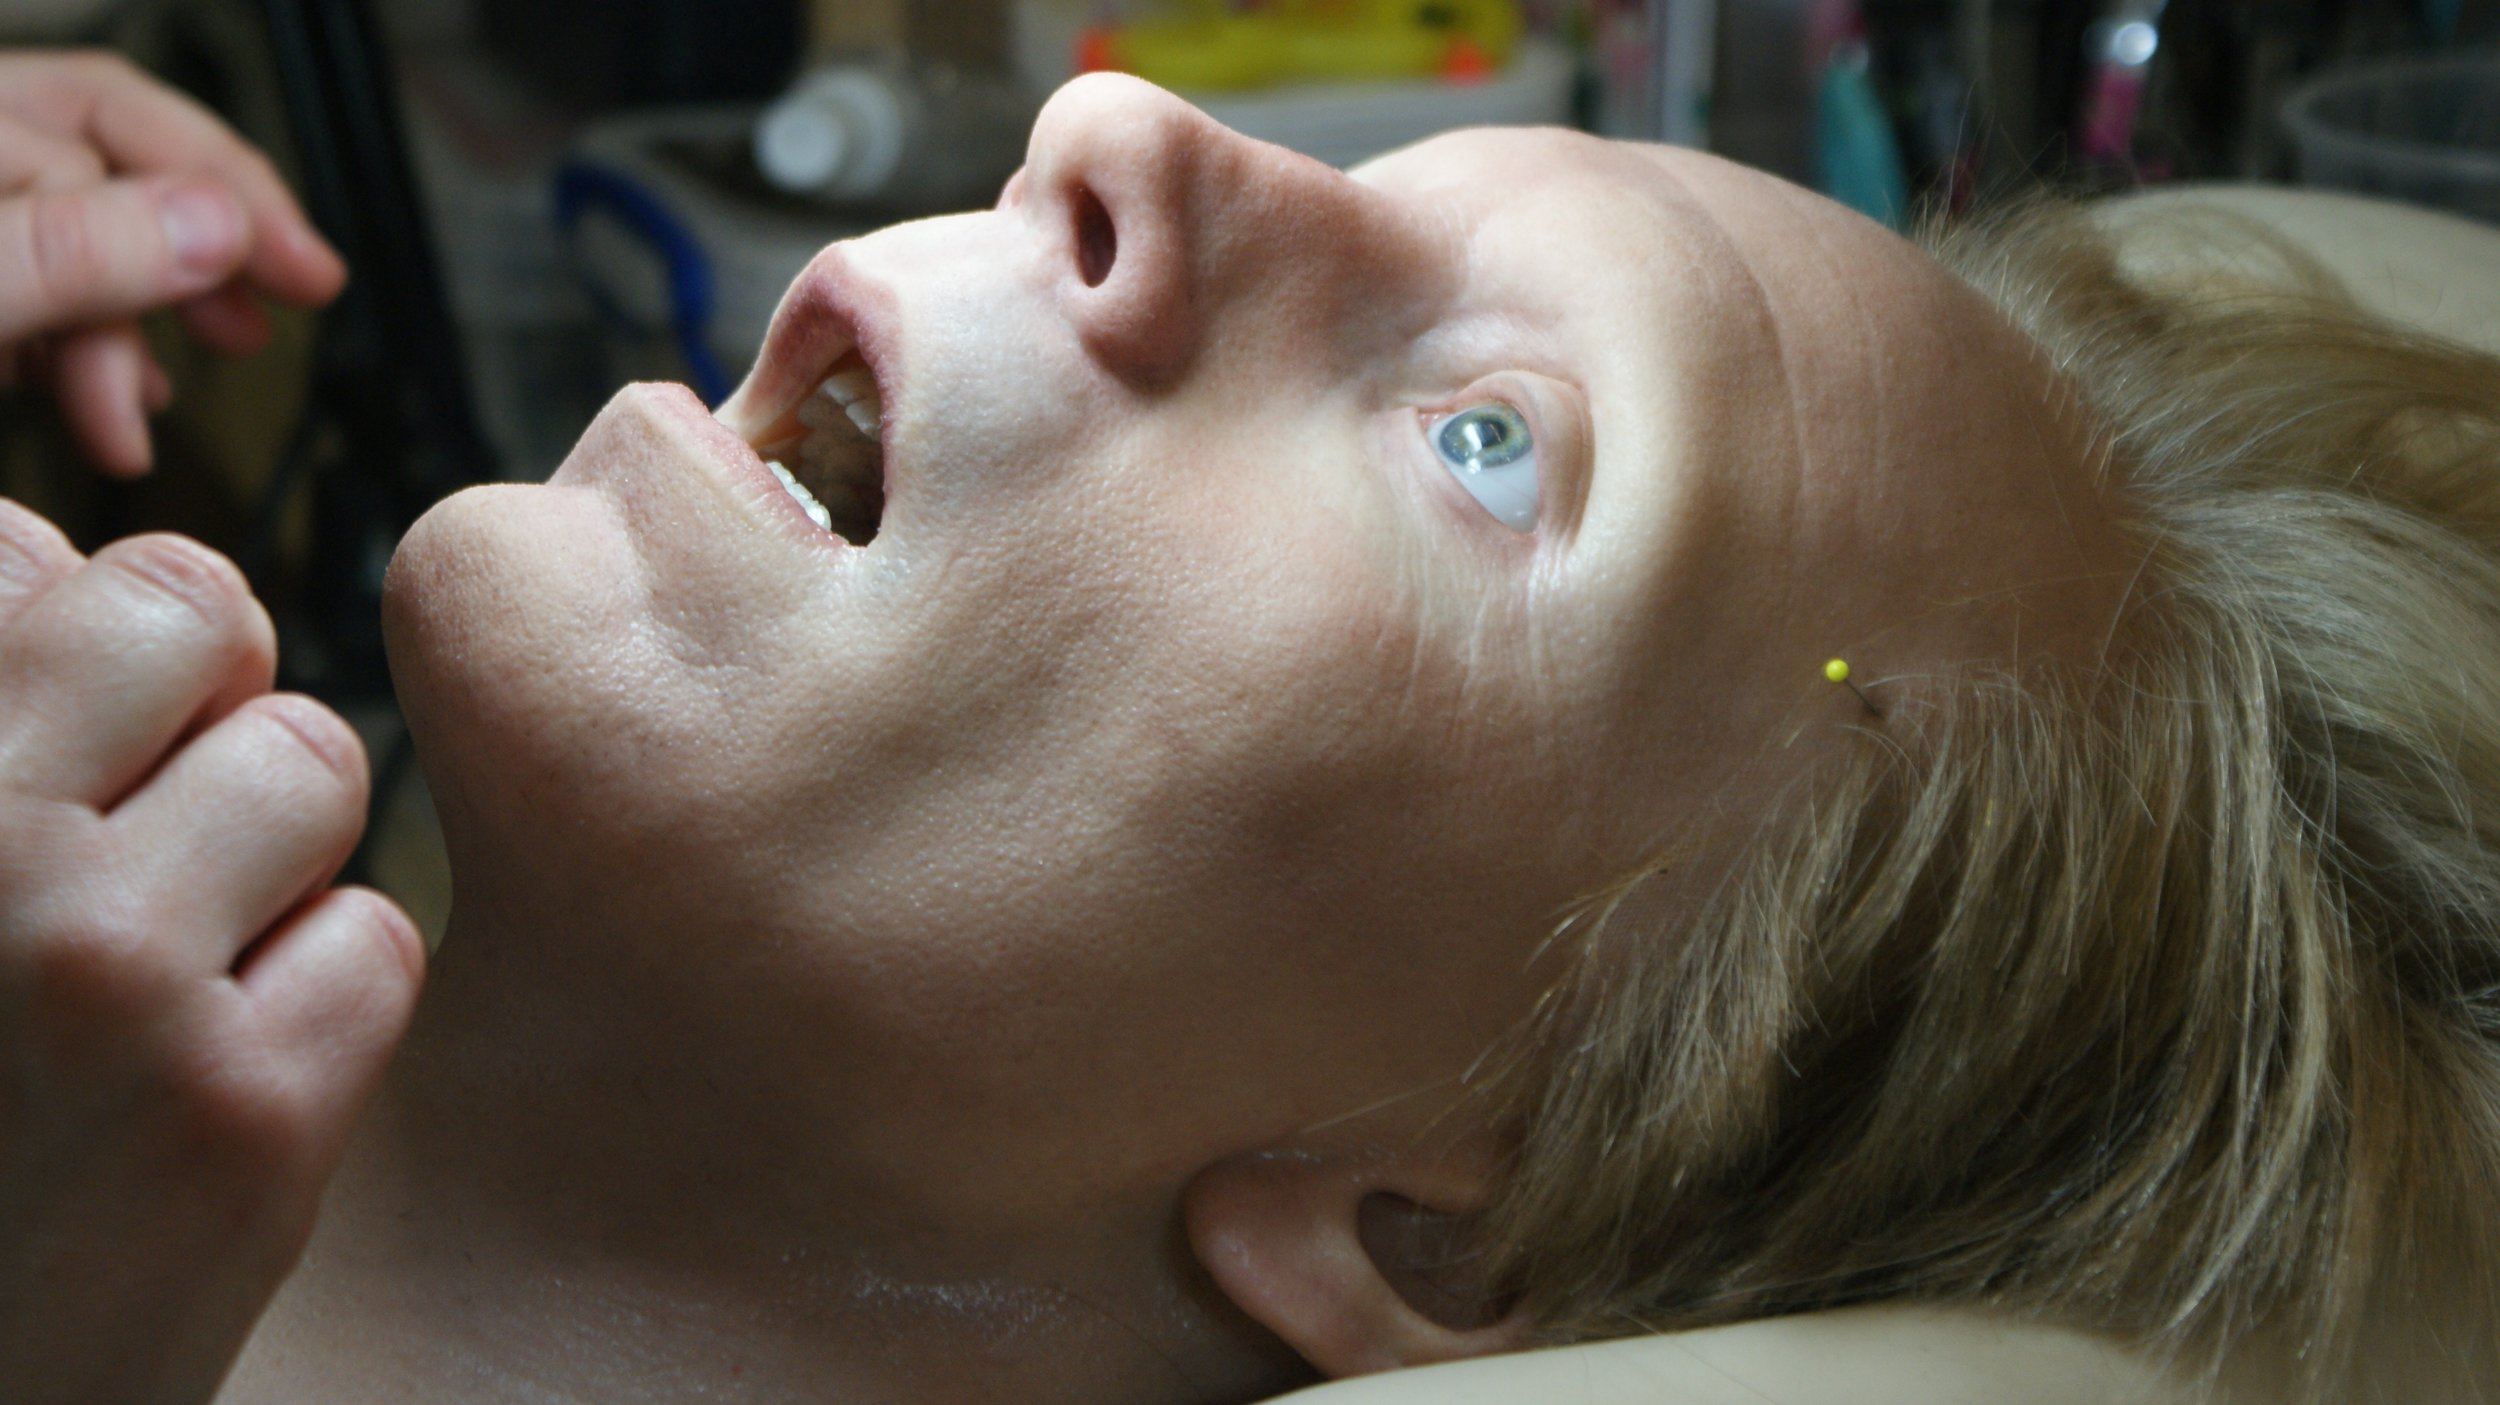 'Animatronic David Head' Prometheus